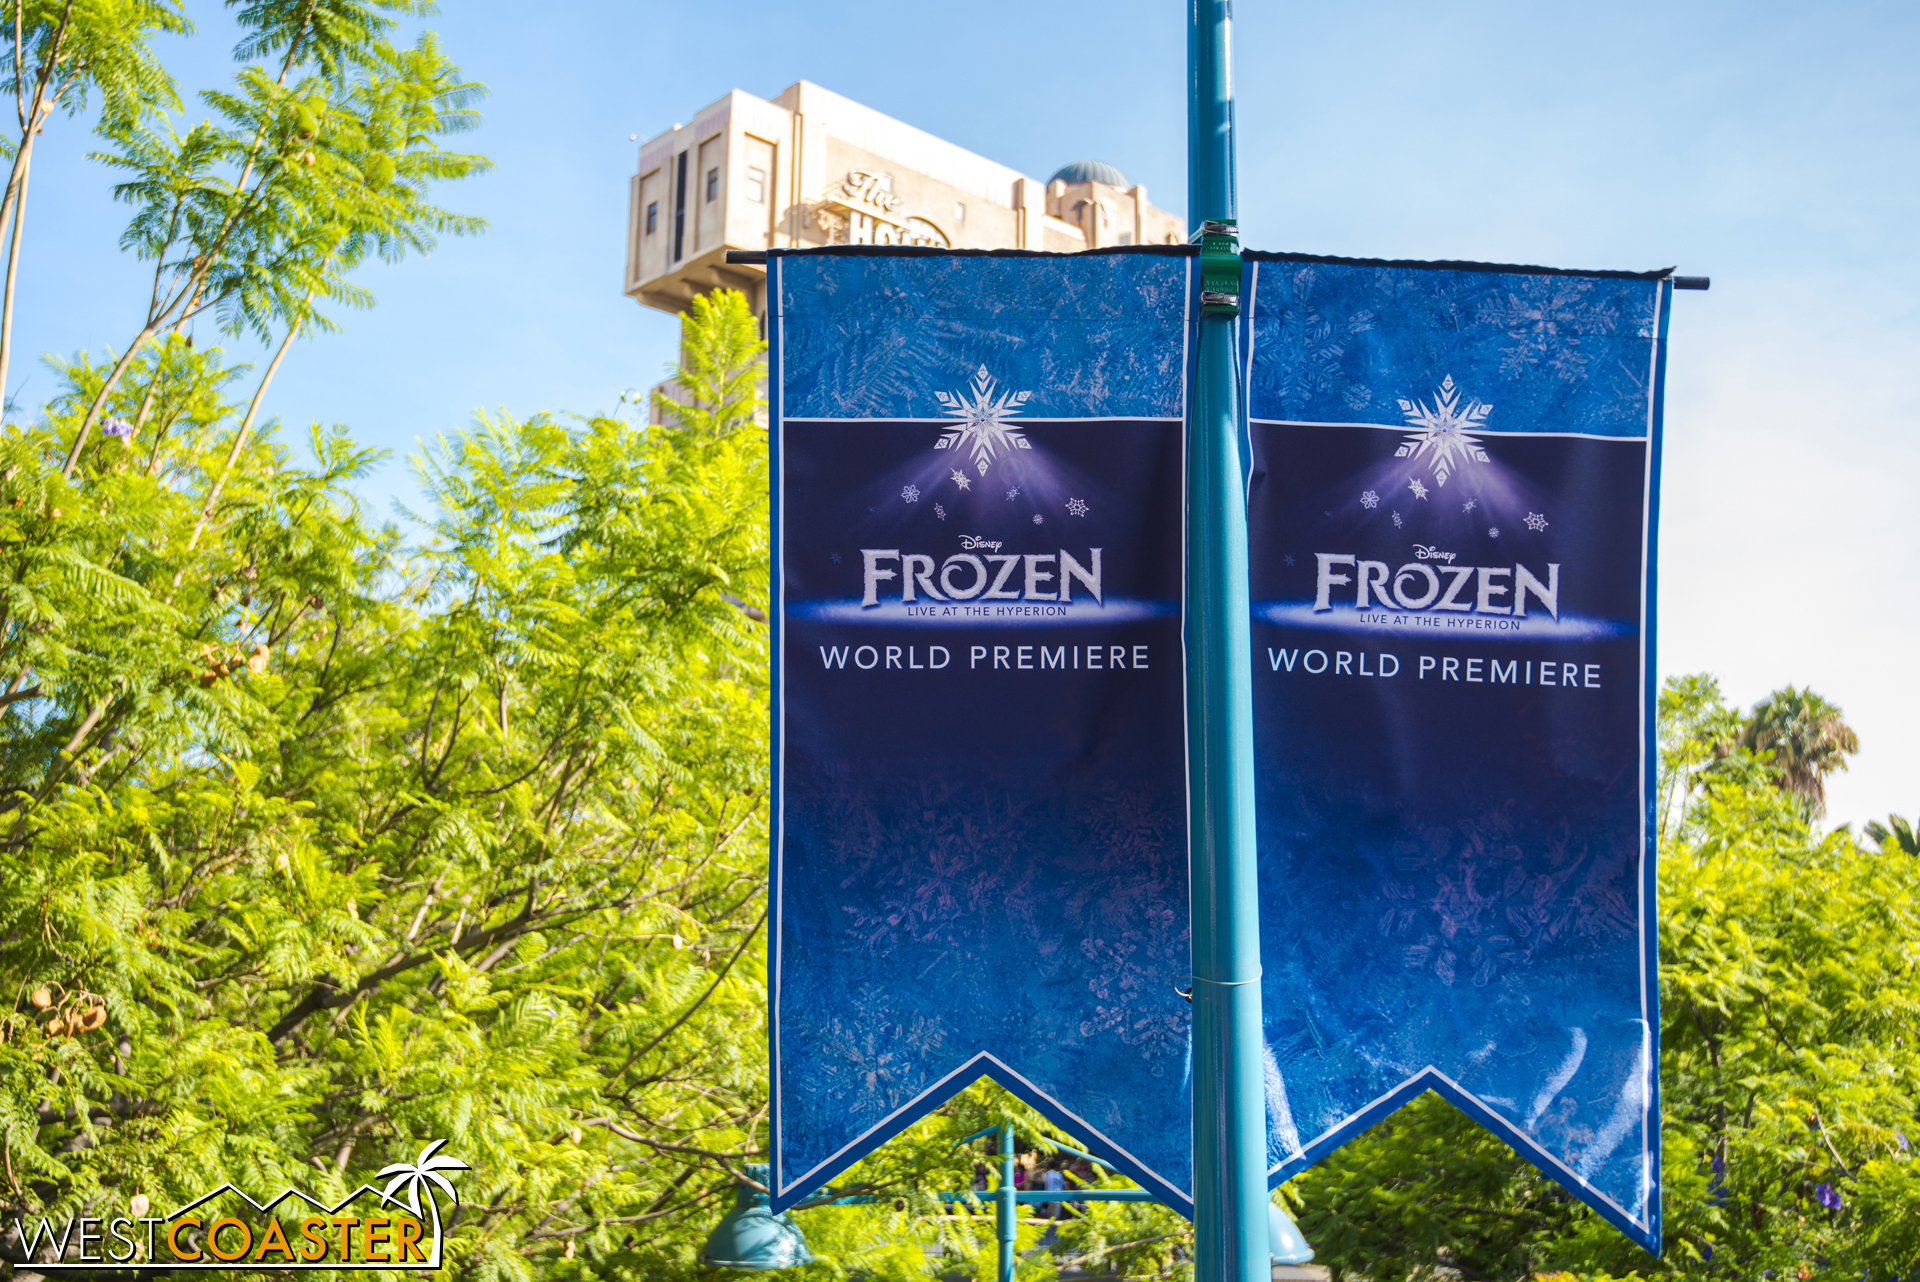 And that, folks, is Frozen: Live at the Hyperion in a nutshell!